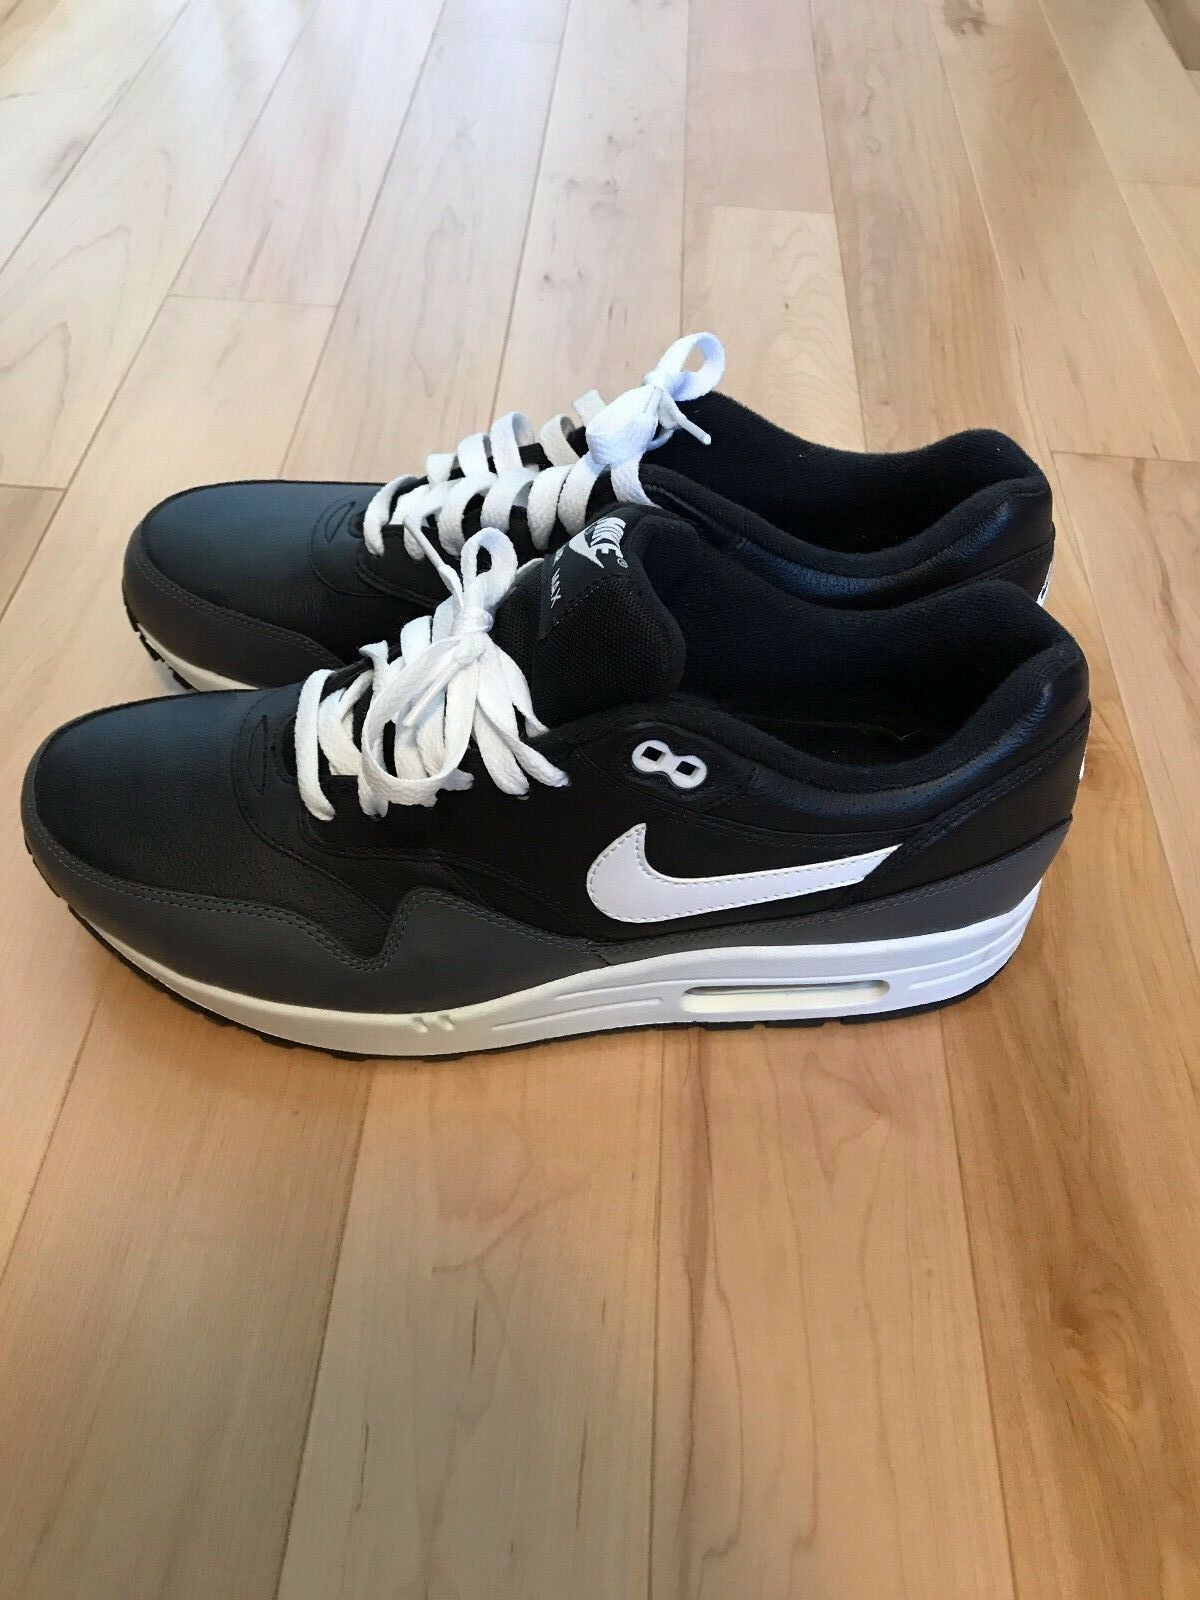 AUTHENTIC Nike Air Max 1 QS Size 10.5 Brand Brand Brand New Unworn Deadstock FREE SHIPPING ef8fbc